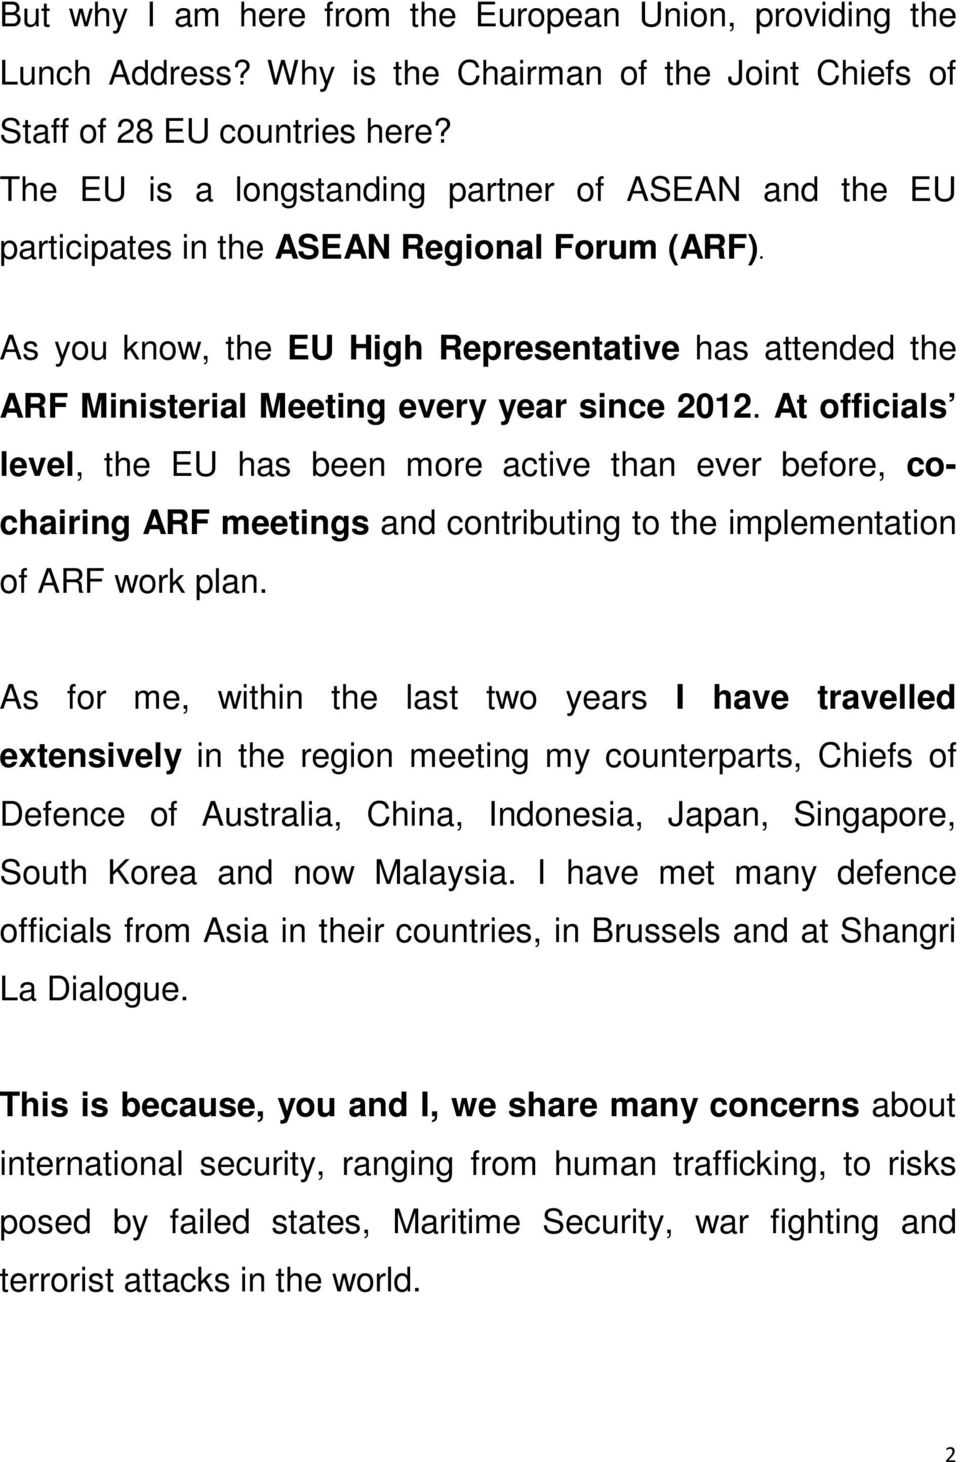 As you know, the EU High Representative has attended the ARF Ministerial Meeting every year since 2012.